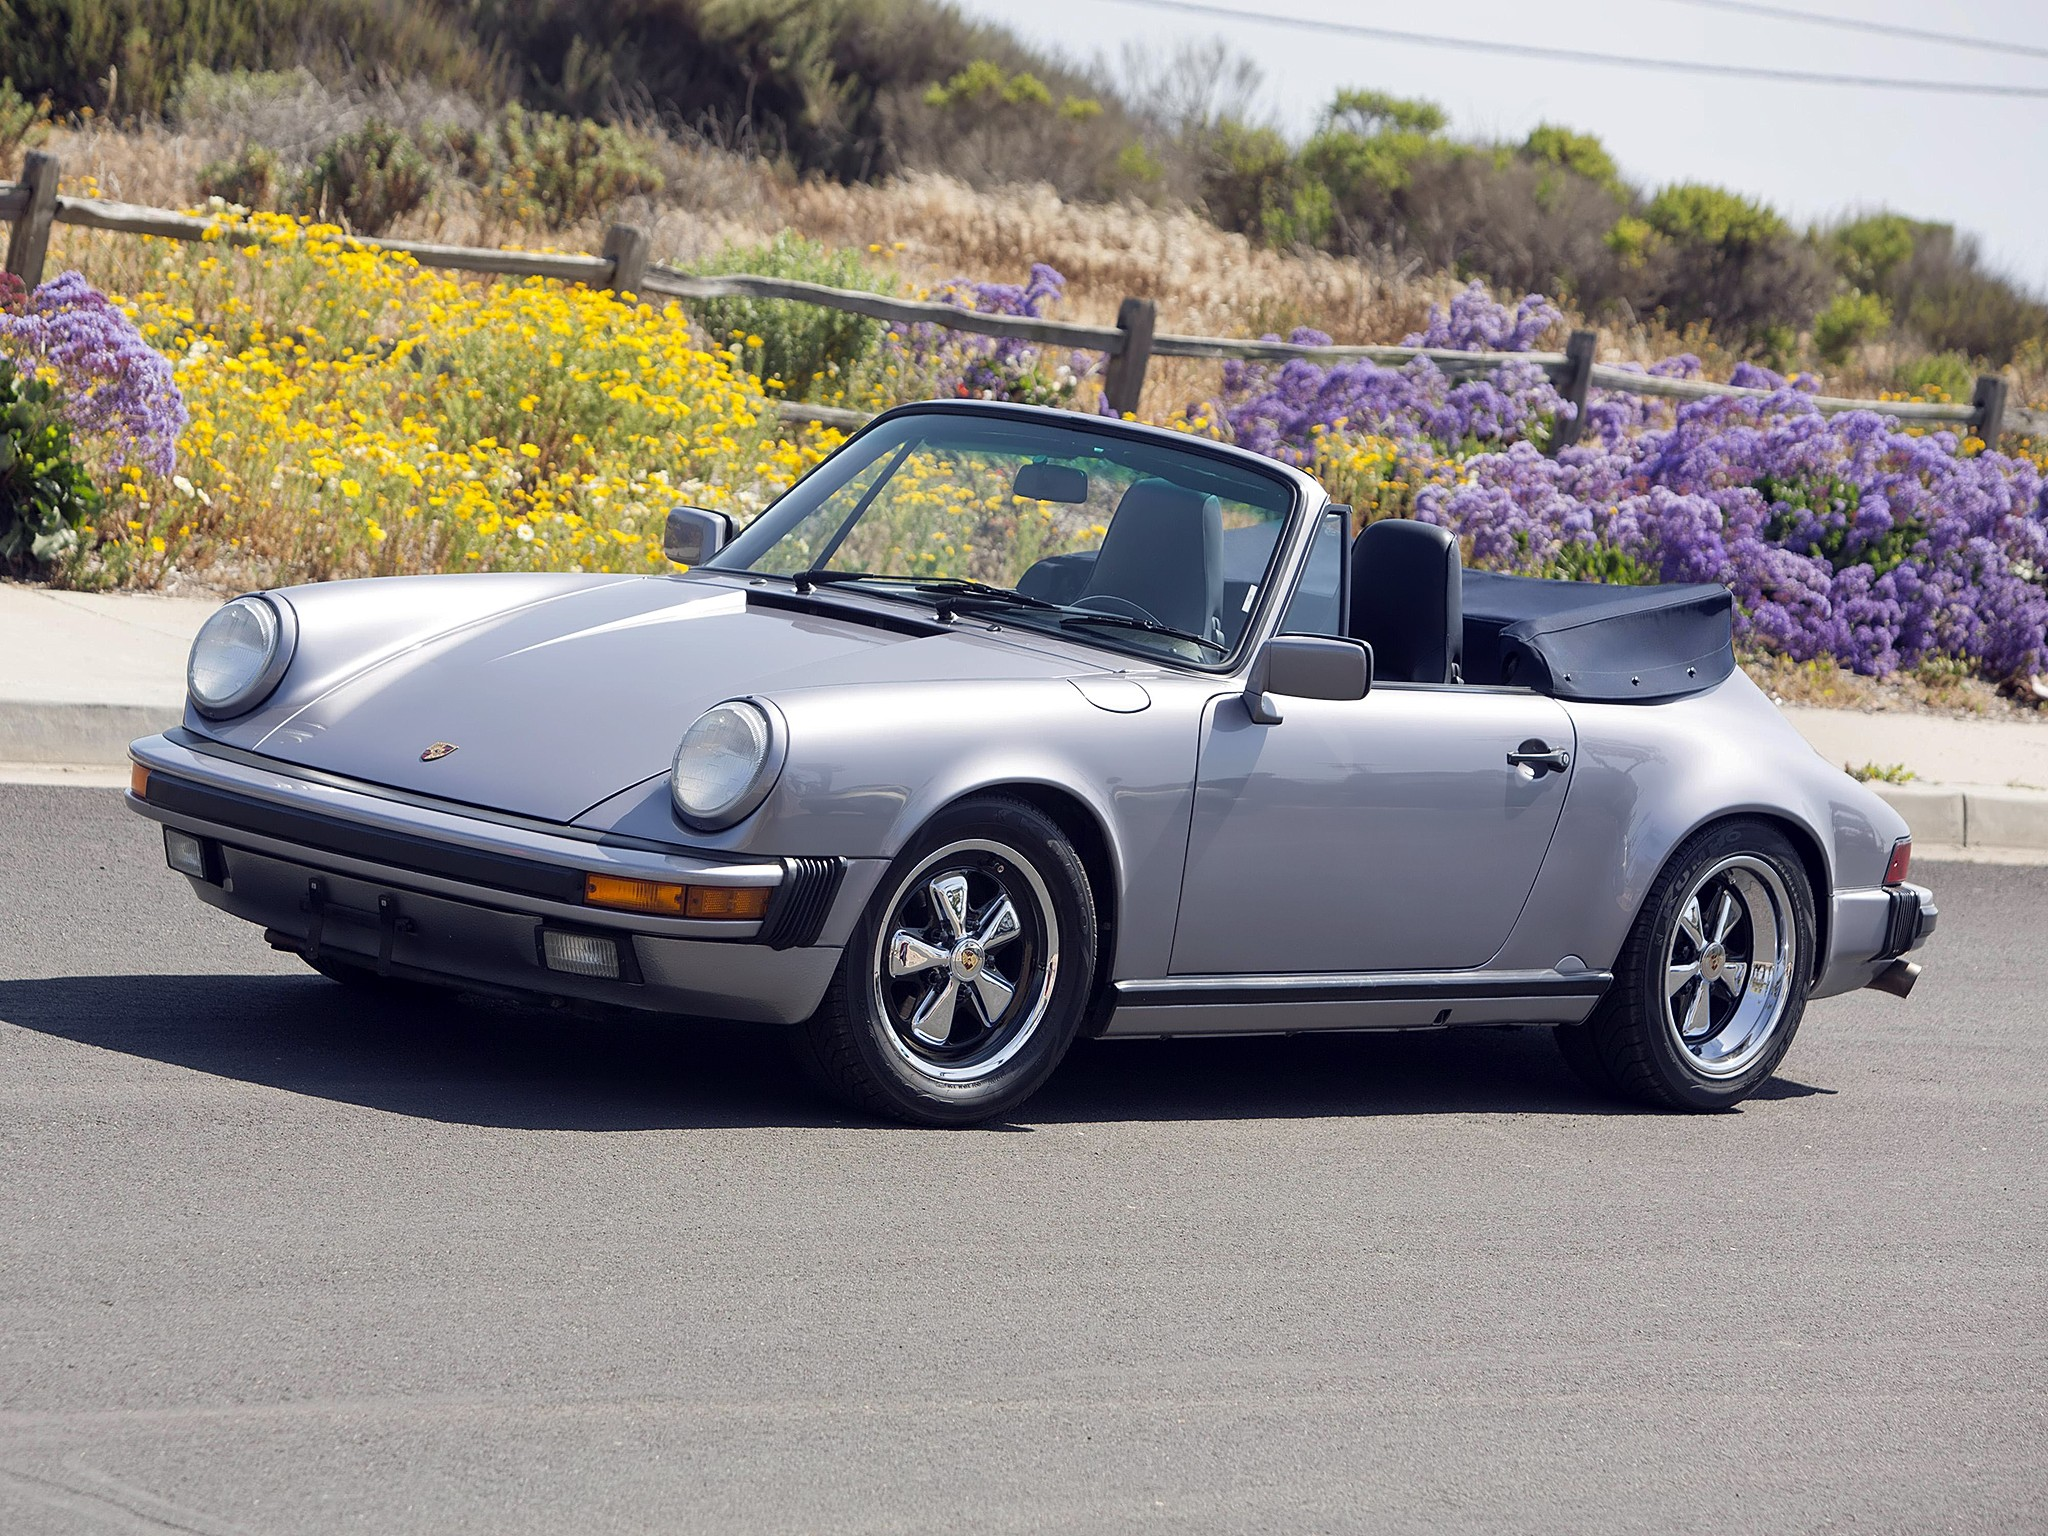 porsche 911 carrera cabriolet 930 specs 1983 1984 1985 1986 1987 1988 1989 autoevolution. Black Bedroom Furniture Sets. Home Design Ideas